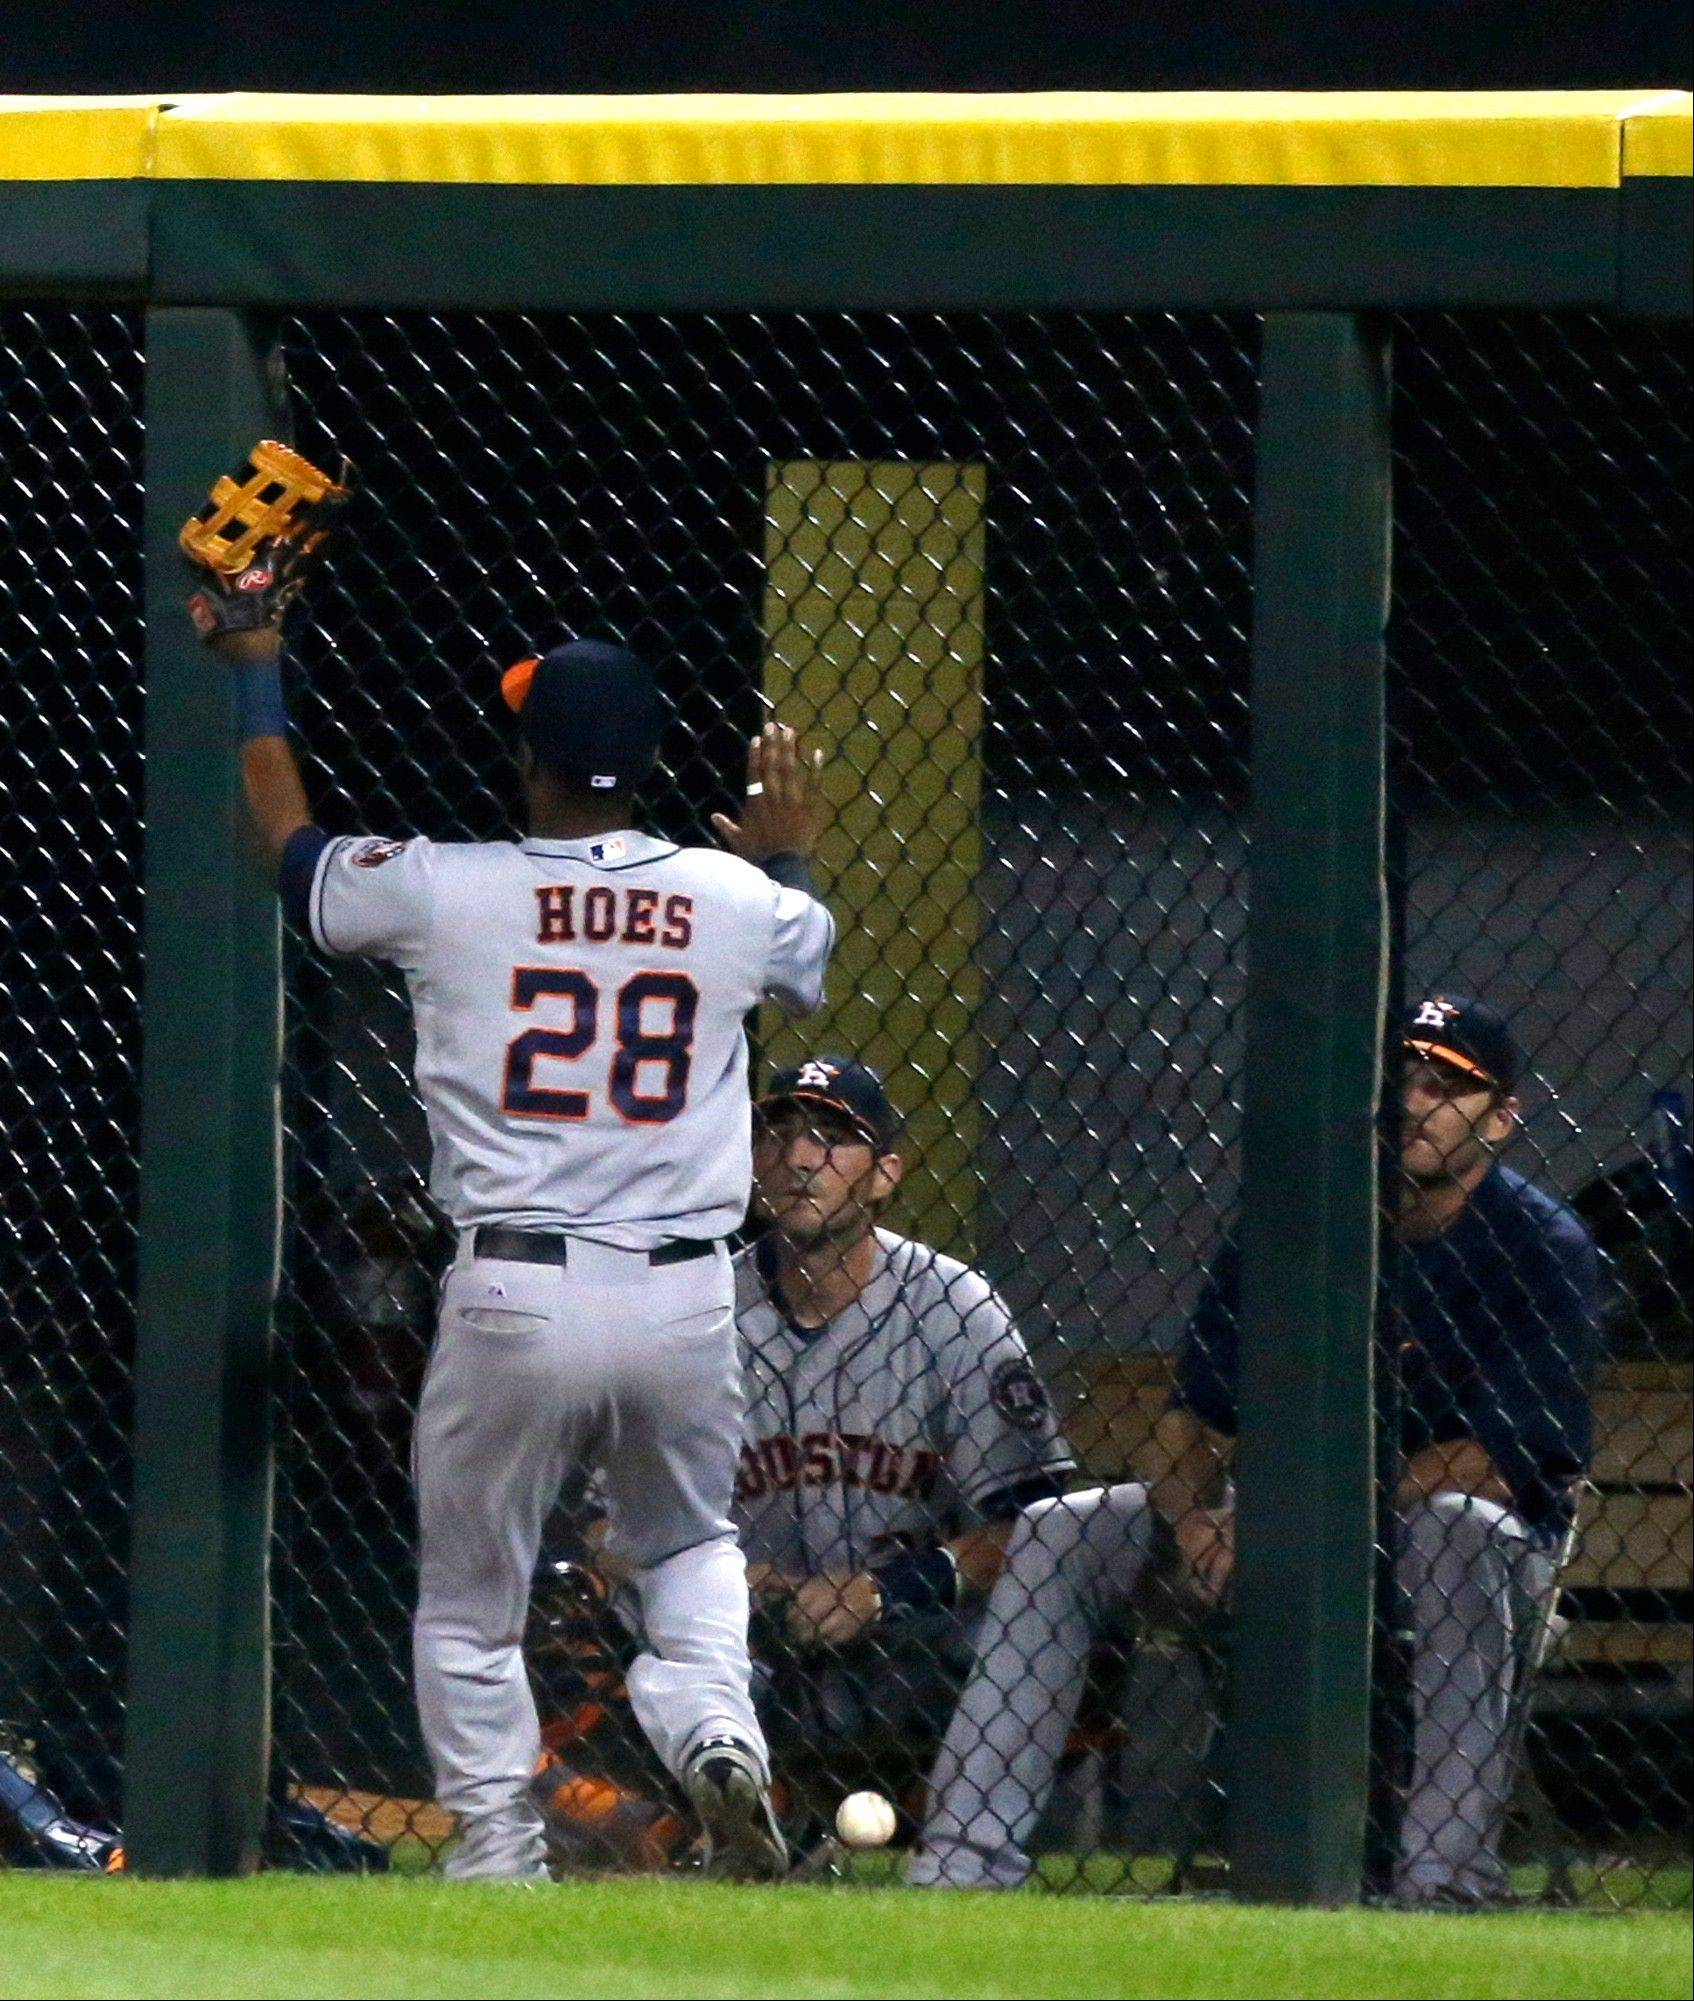 Houston Astros right fielder L.J. Hoes misjudges a fly ball hit bay Chicago White Sox's Gordon Beckham during the fifth inning of a baseball game, Monday, Aug. 26, 2013, in Chicago. Alejandro De Aza scored on Hoes' fielding error.